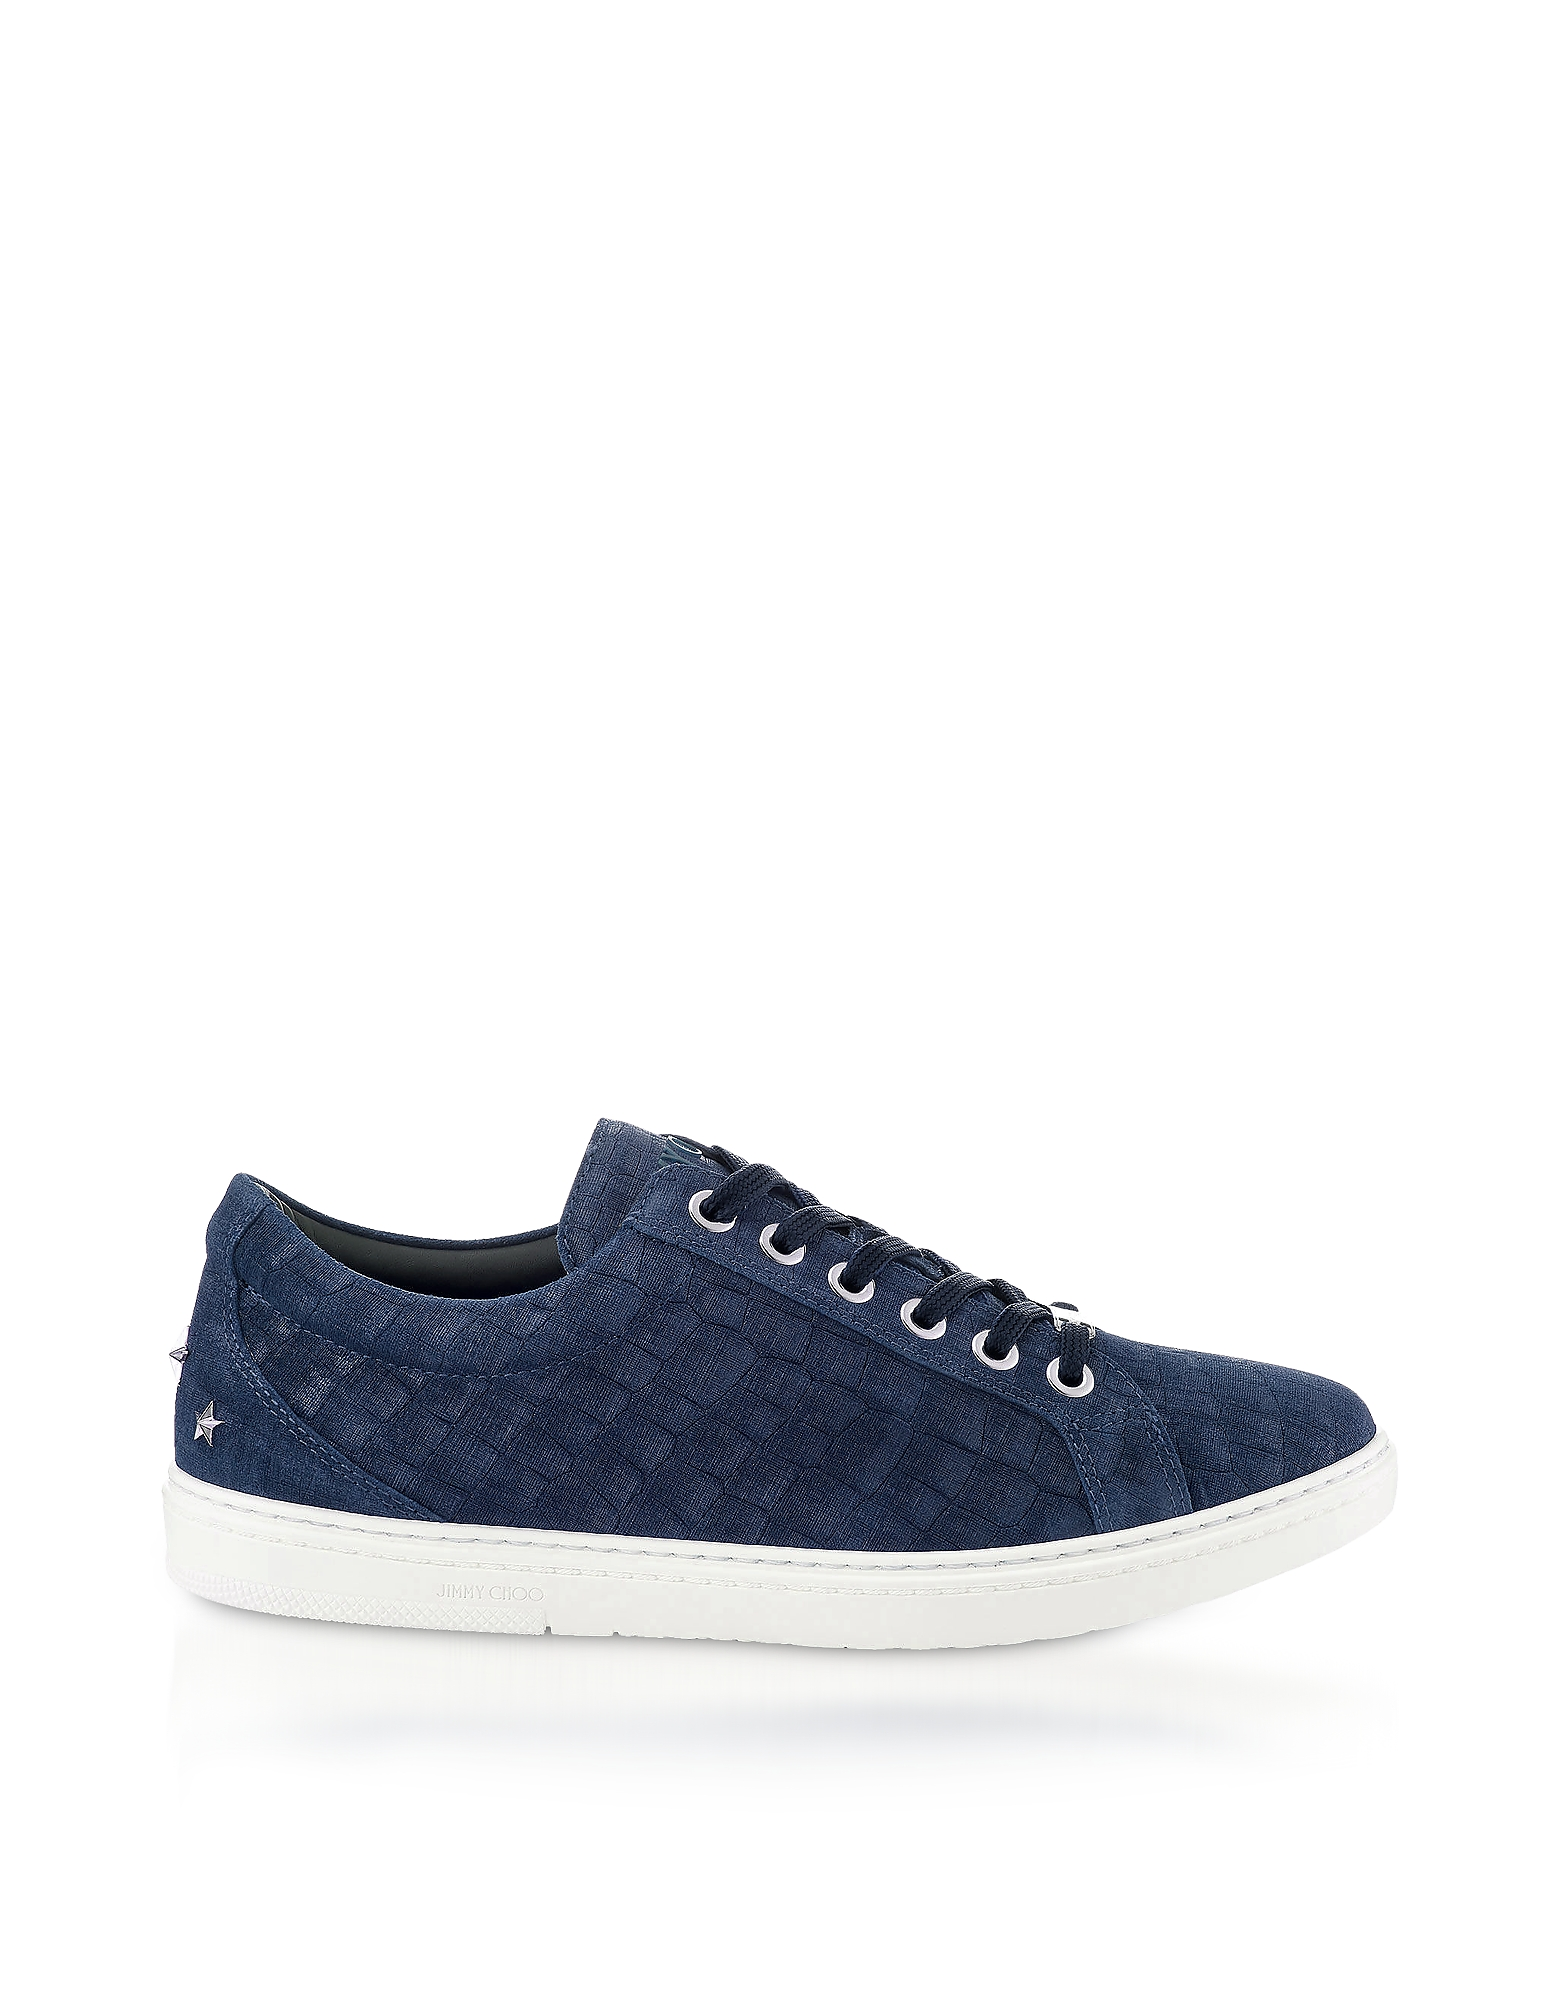 Jimmy Choo Shoes, Cash Navy Croco Print Denim Leather Low Top Trainers